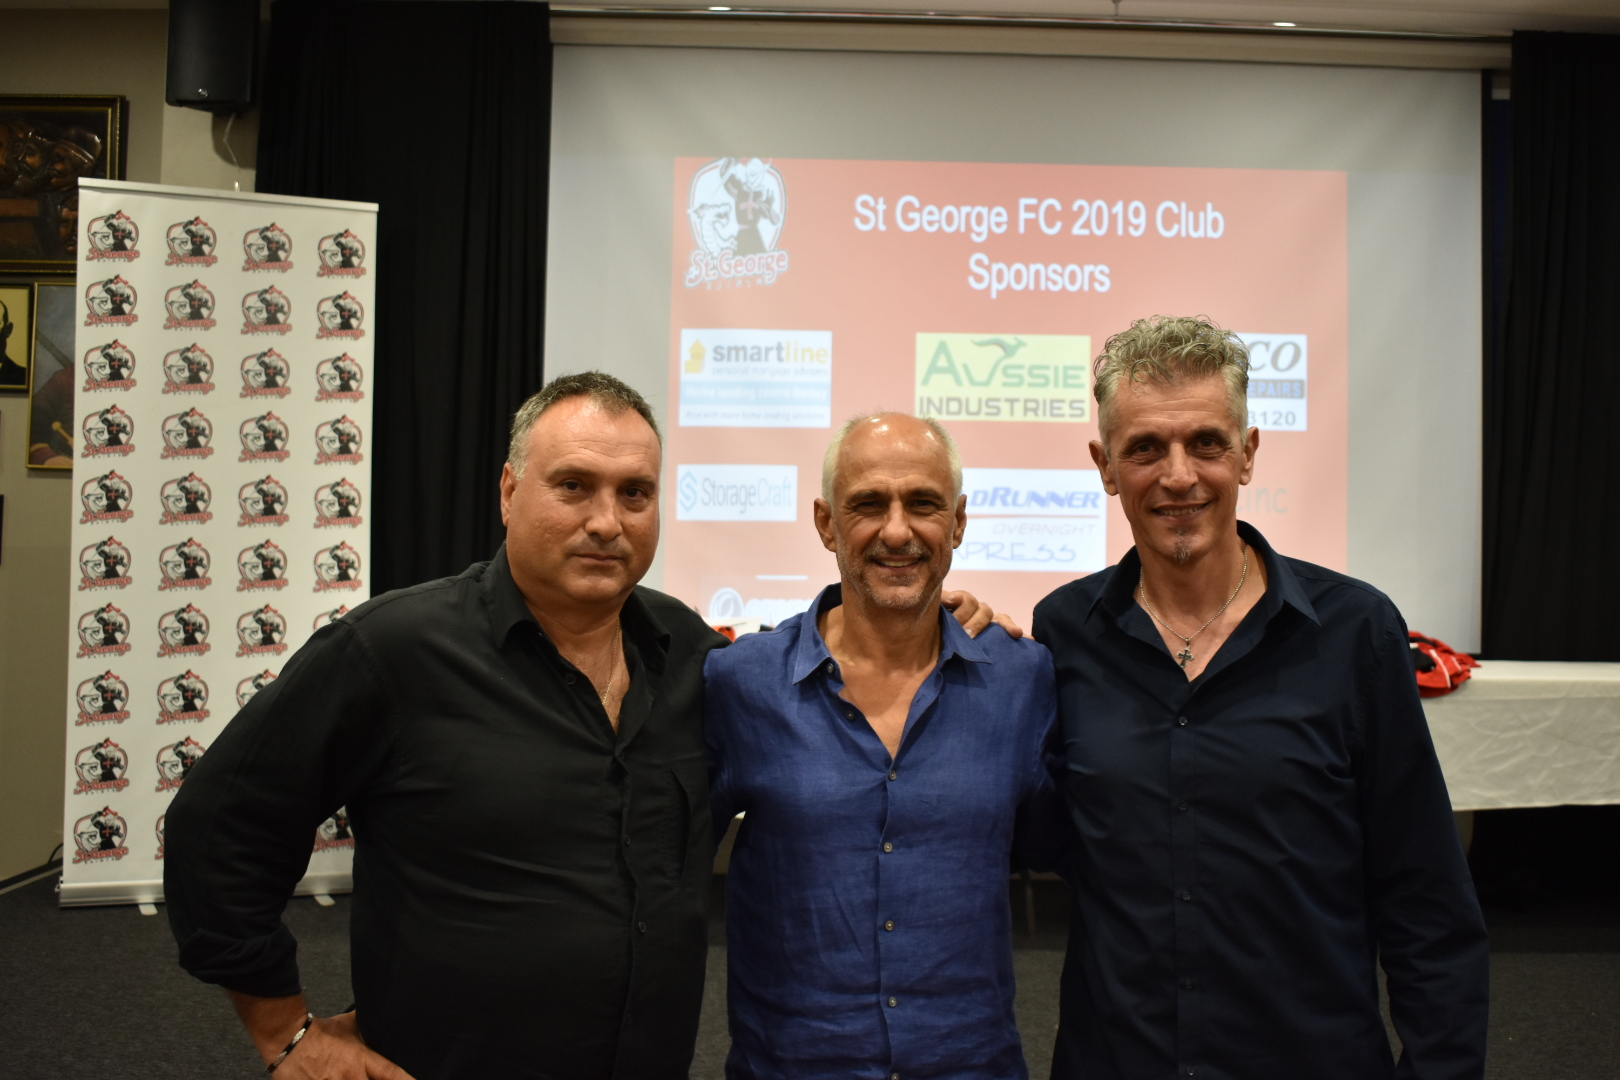 Jim Patikas, Wally Savor and Spiros Oikonomopoulos at the St George season launch.JPG